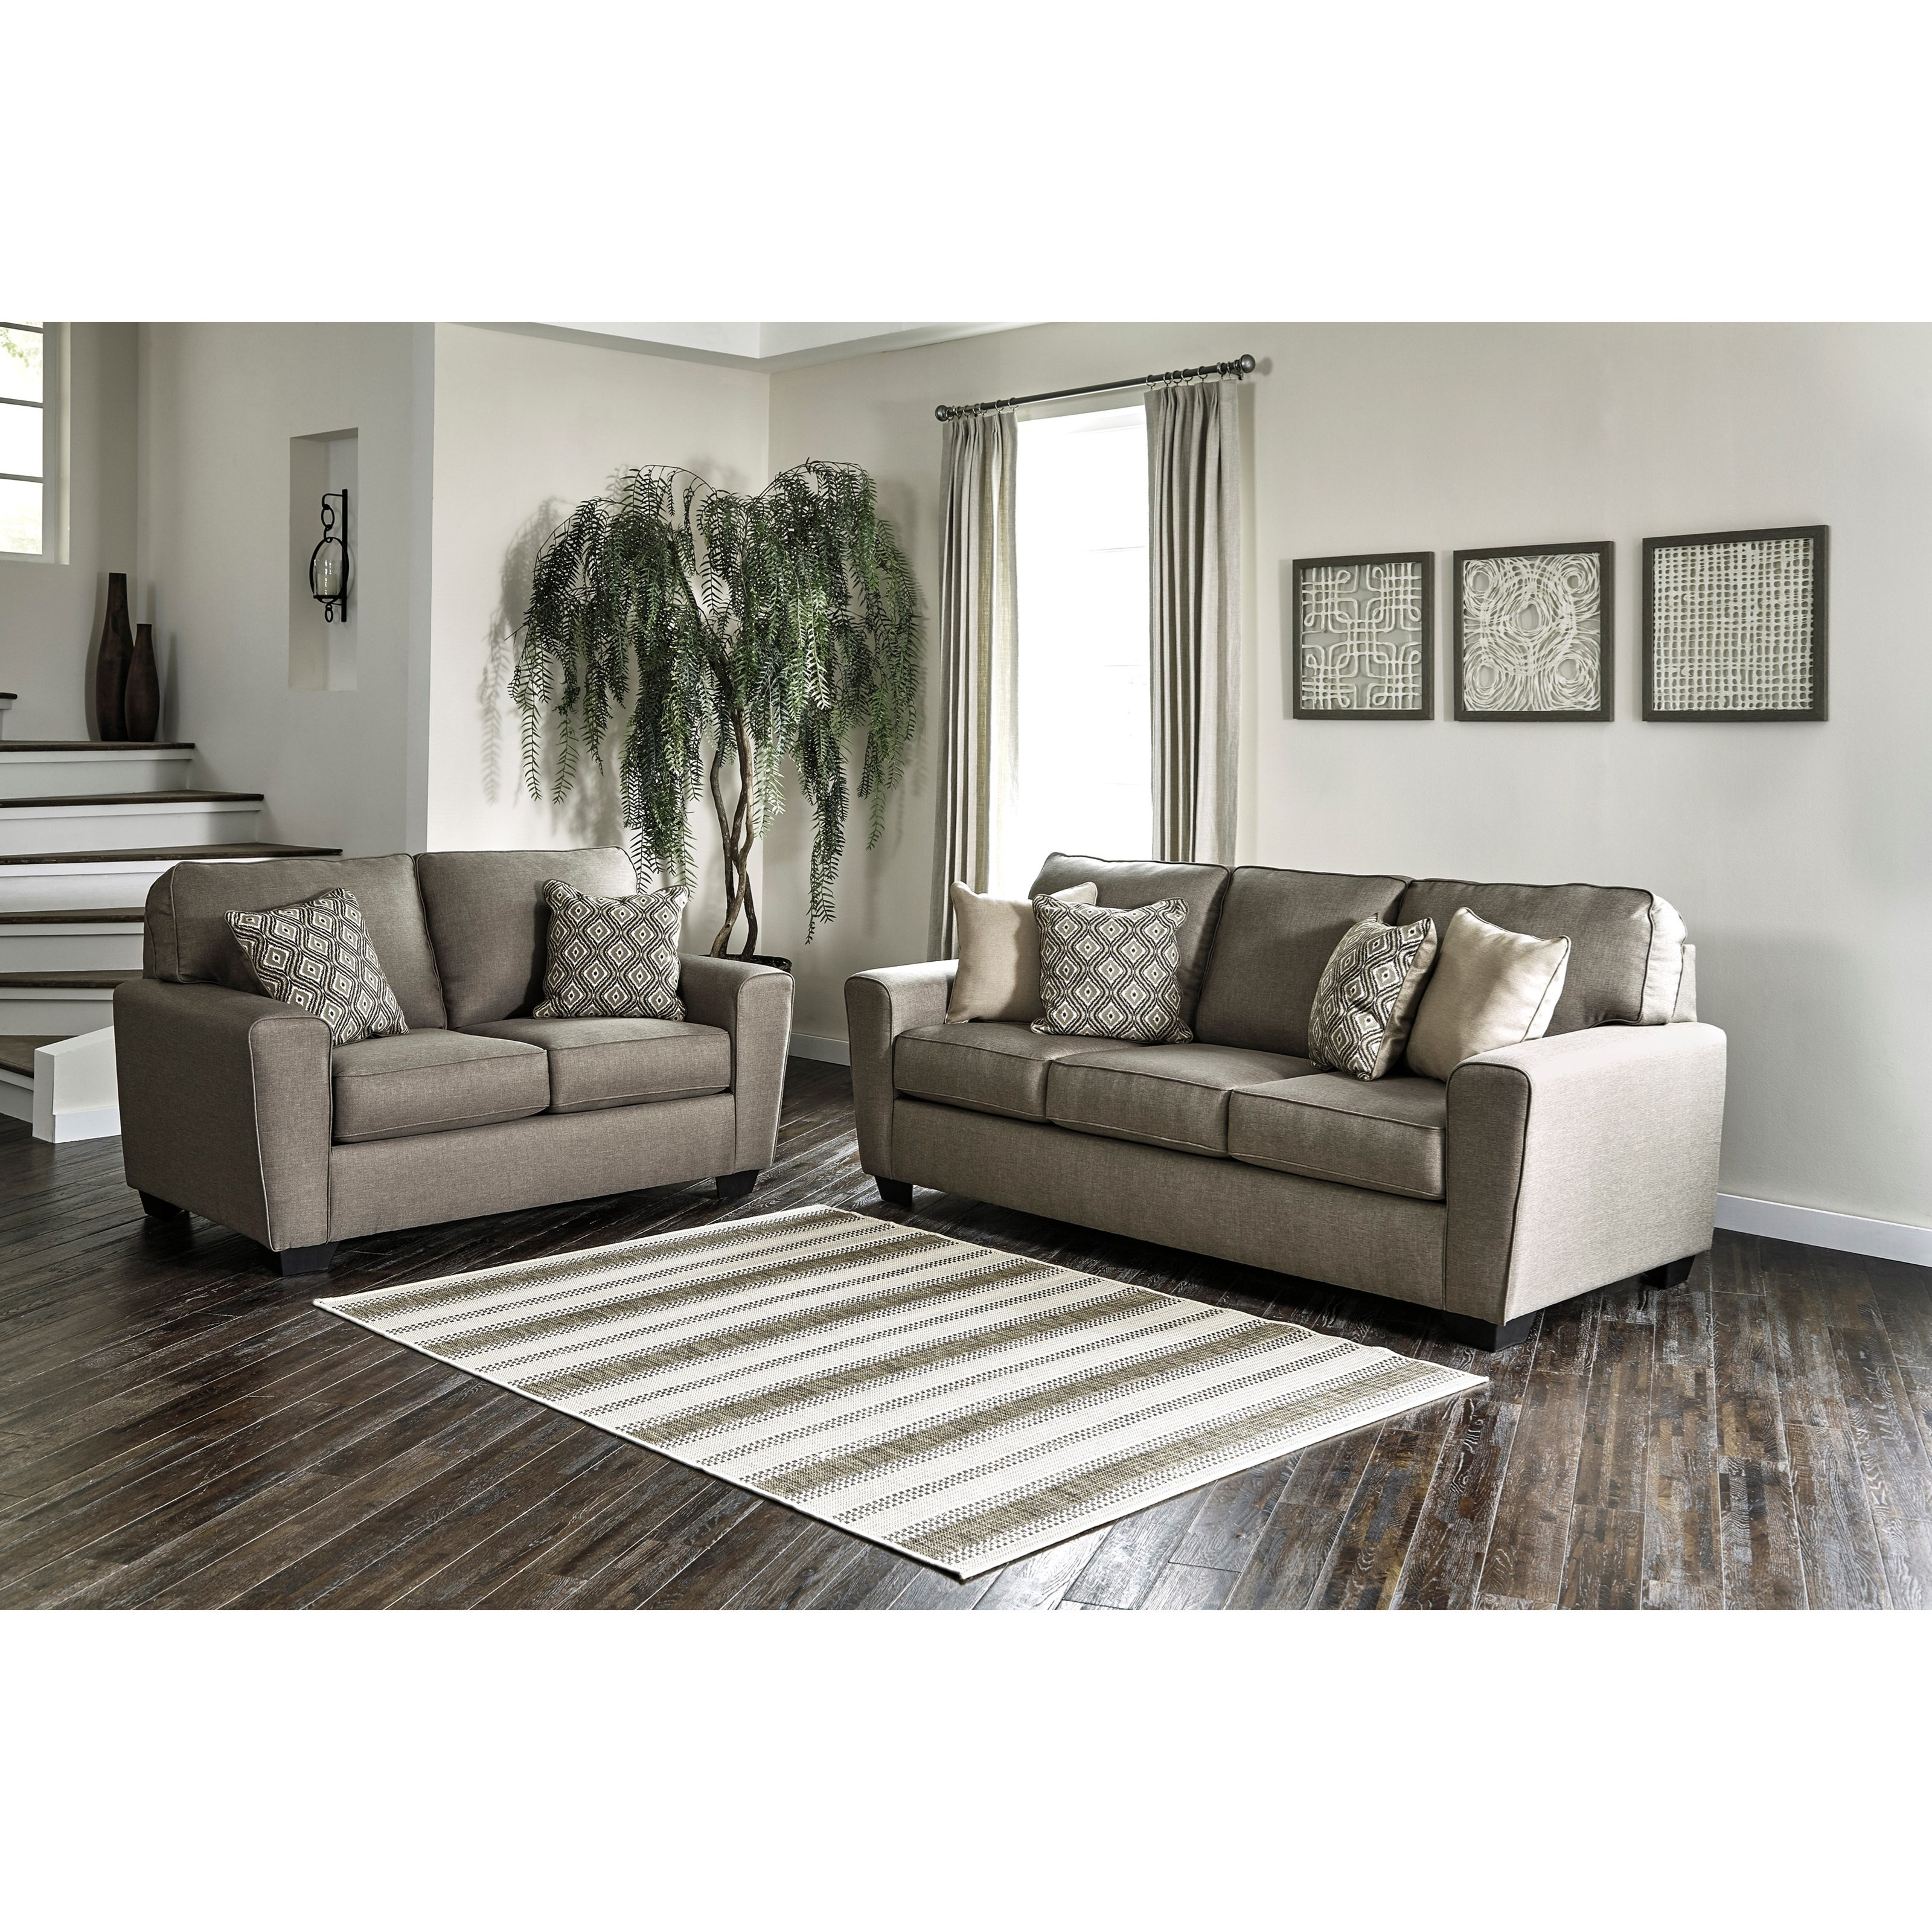 Calicho Stationary Living Room Group by Benchcraft at Home Furnishings Direct